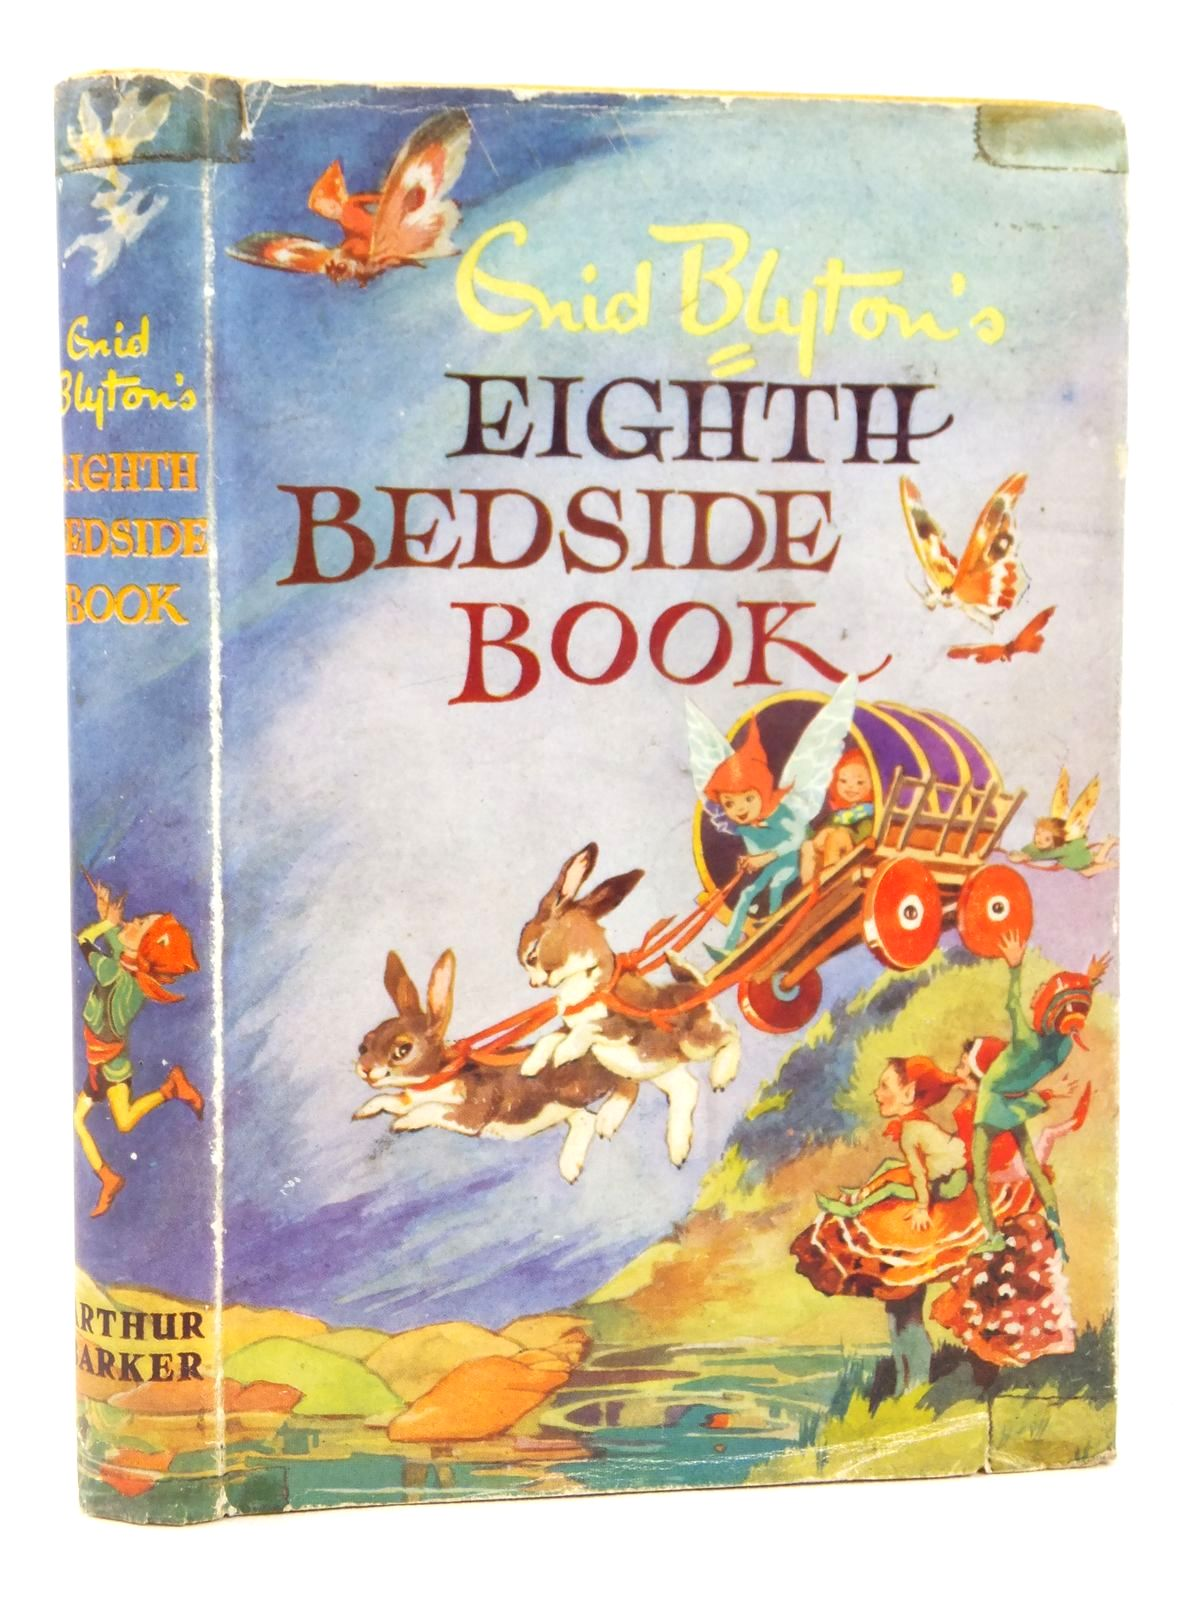 Photo of ENID BLYTON'S EIGHTH BEDSIDE BOOK written by Blyton, Enid published by Arthur Barker Ltd. (STOCK CODE: 2122074)  for sale by Stella & Rose's Books